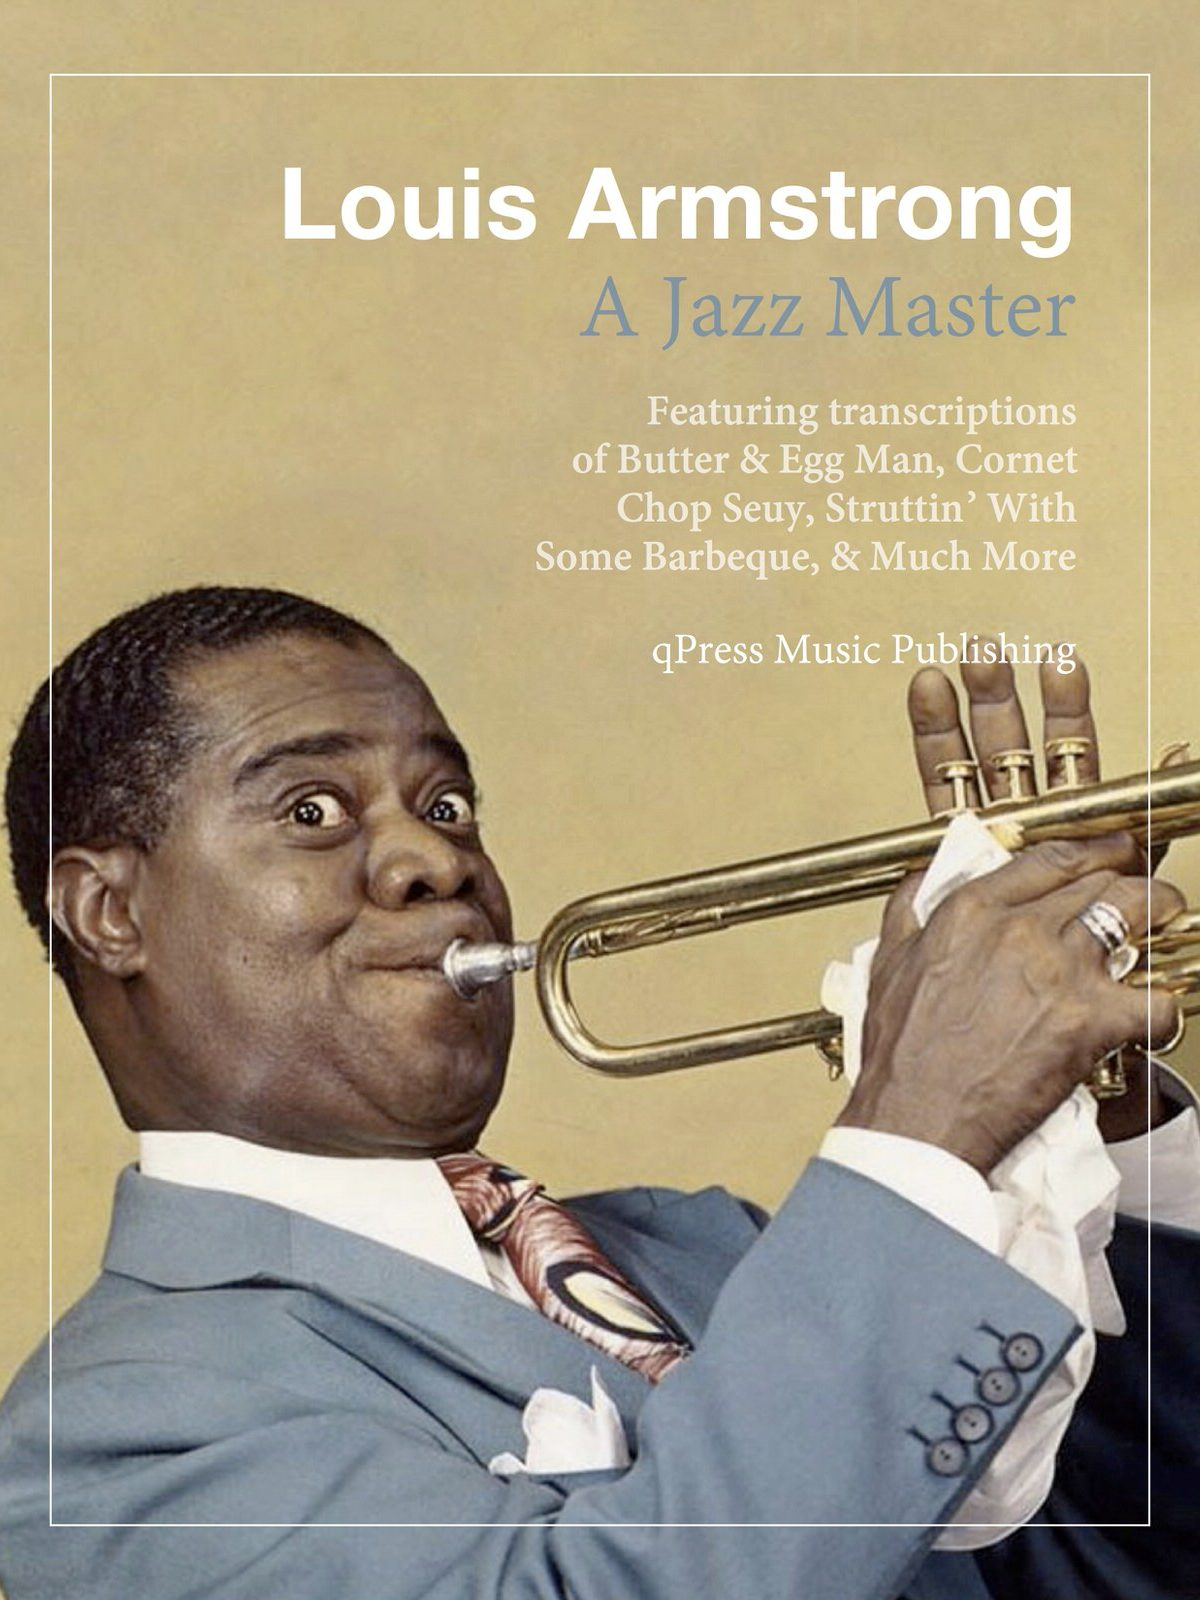 the life and contributions of louis armstrong By the time louis armstrong died in 1971 he profoundly changed the culture of the world he was born into his affability and his musical excellence, underscored by comic genius combined to make him one of the first great pop figures of the 20th century.